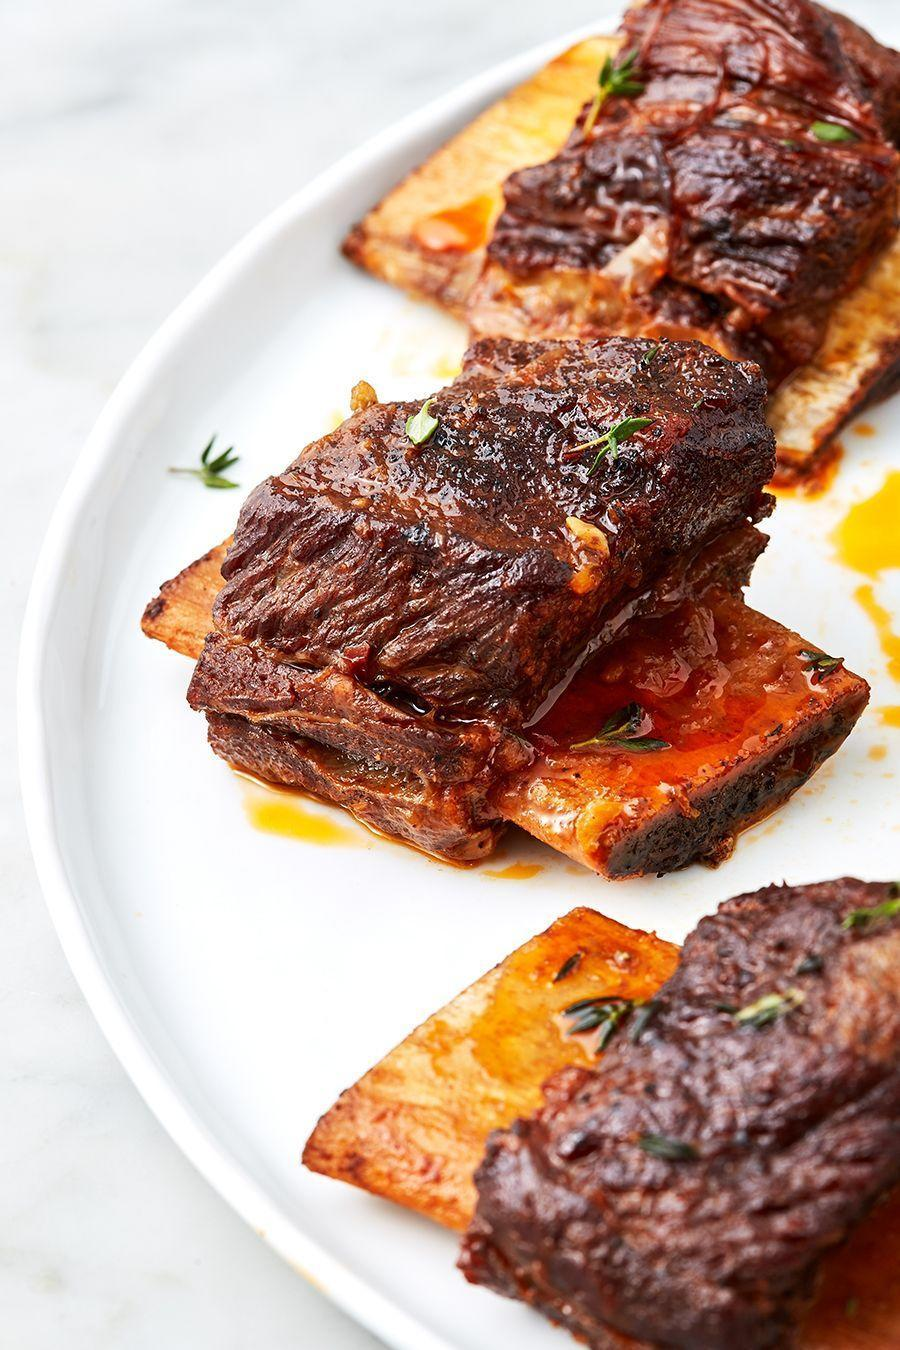 """<p>While not exactly instant, this Instant Pot recipe takes half the time most braised ribs recipes call for. The richness of bacon and short ribs shines against the mildly sweet background of sherry wine, carrots, and star anise. </p><p>Get the <a href=""""https://www.delish.com/uk/cooking/recipes/a31389371/instant-pot-short-ribs-recipe/"""" rel=""""nofollow noopener"""" target=""""_blank"""" data-ylk=""""slk:Instant Pot Short Ribs"""" class=""""link rapid-noclick-resp"""">Instant Pot Short Ribs</a> recipe.</p>"""